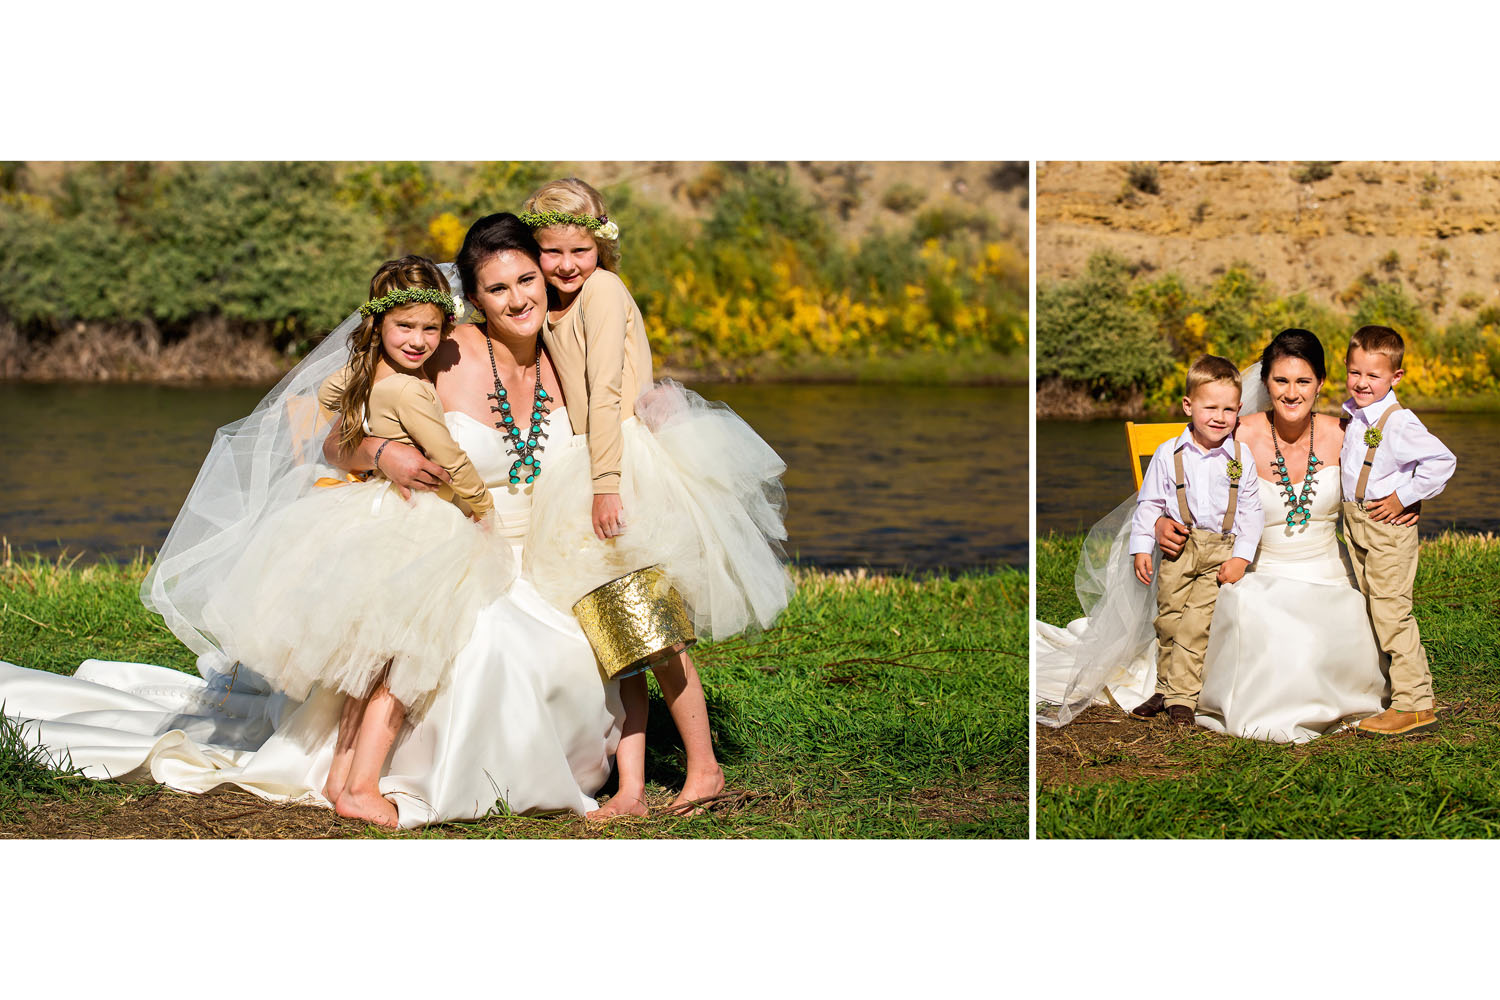 Hanna_Jesse_2015_Wedding_Album_APPROVED_DESING_AWAITING_RETOUCHING_23.jpg